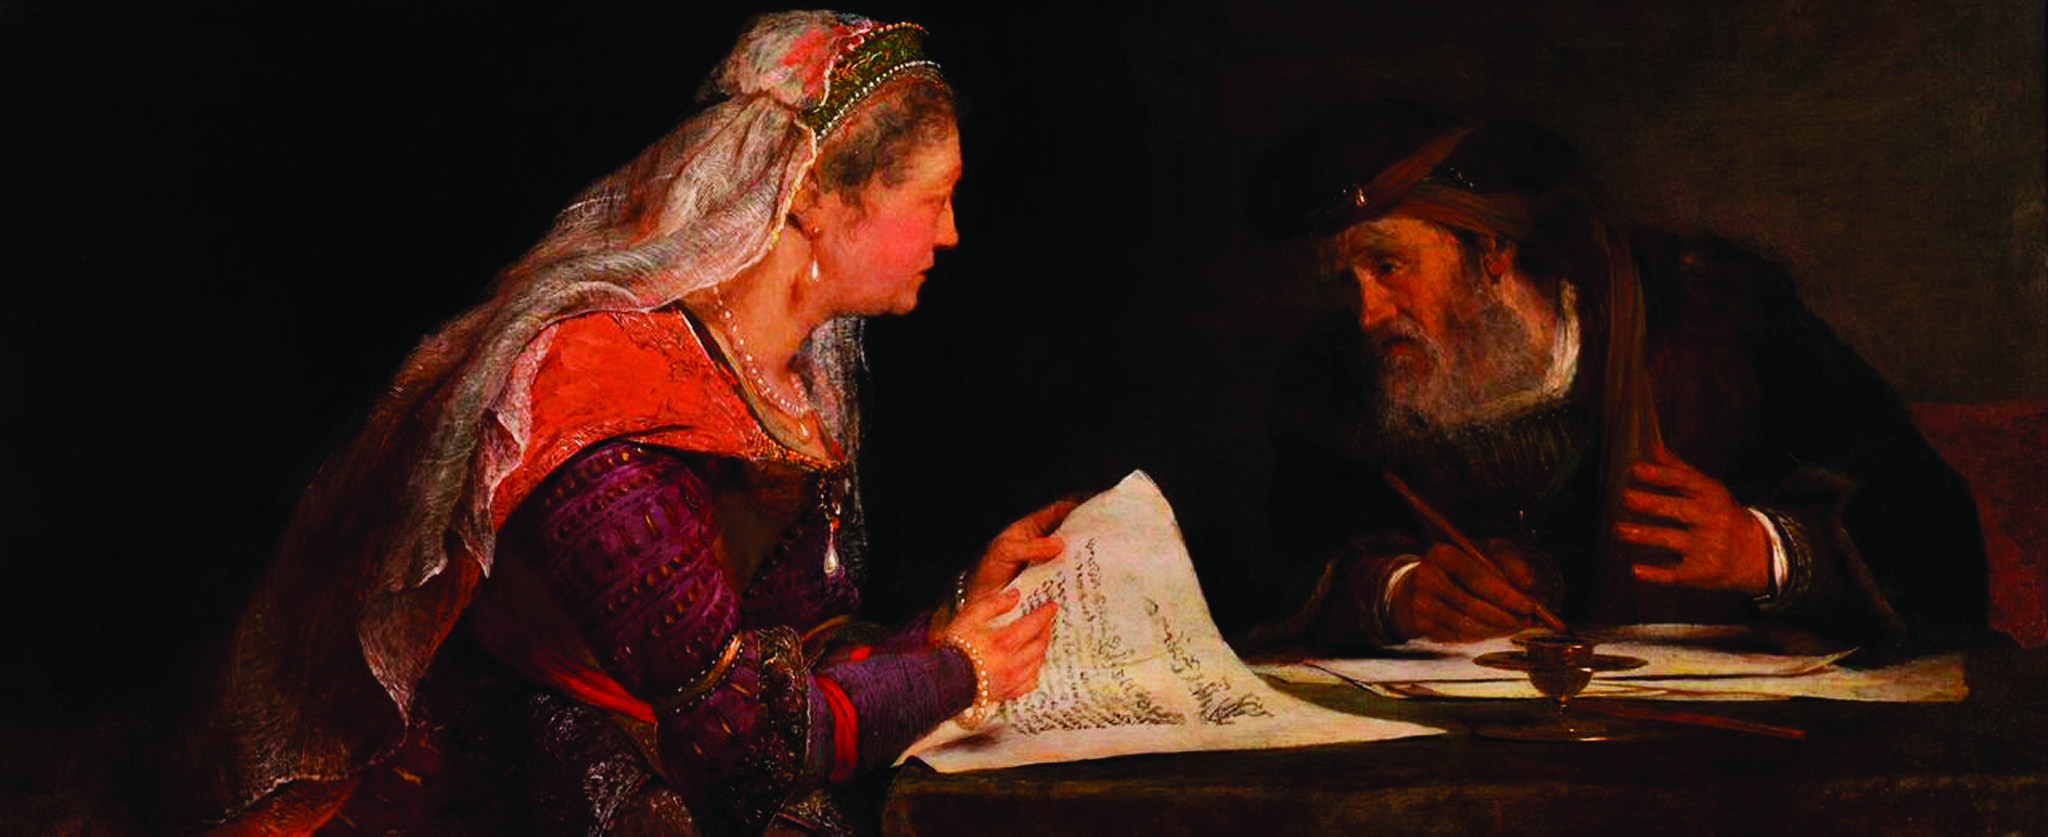 Aert de Gelder, 'Esther and Mordecai,' ca. 1685. Museum Appropriation Fund. Courtesy of the RISD Museum, Providence, RI.